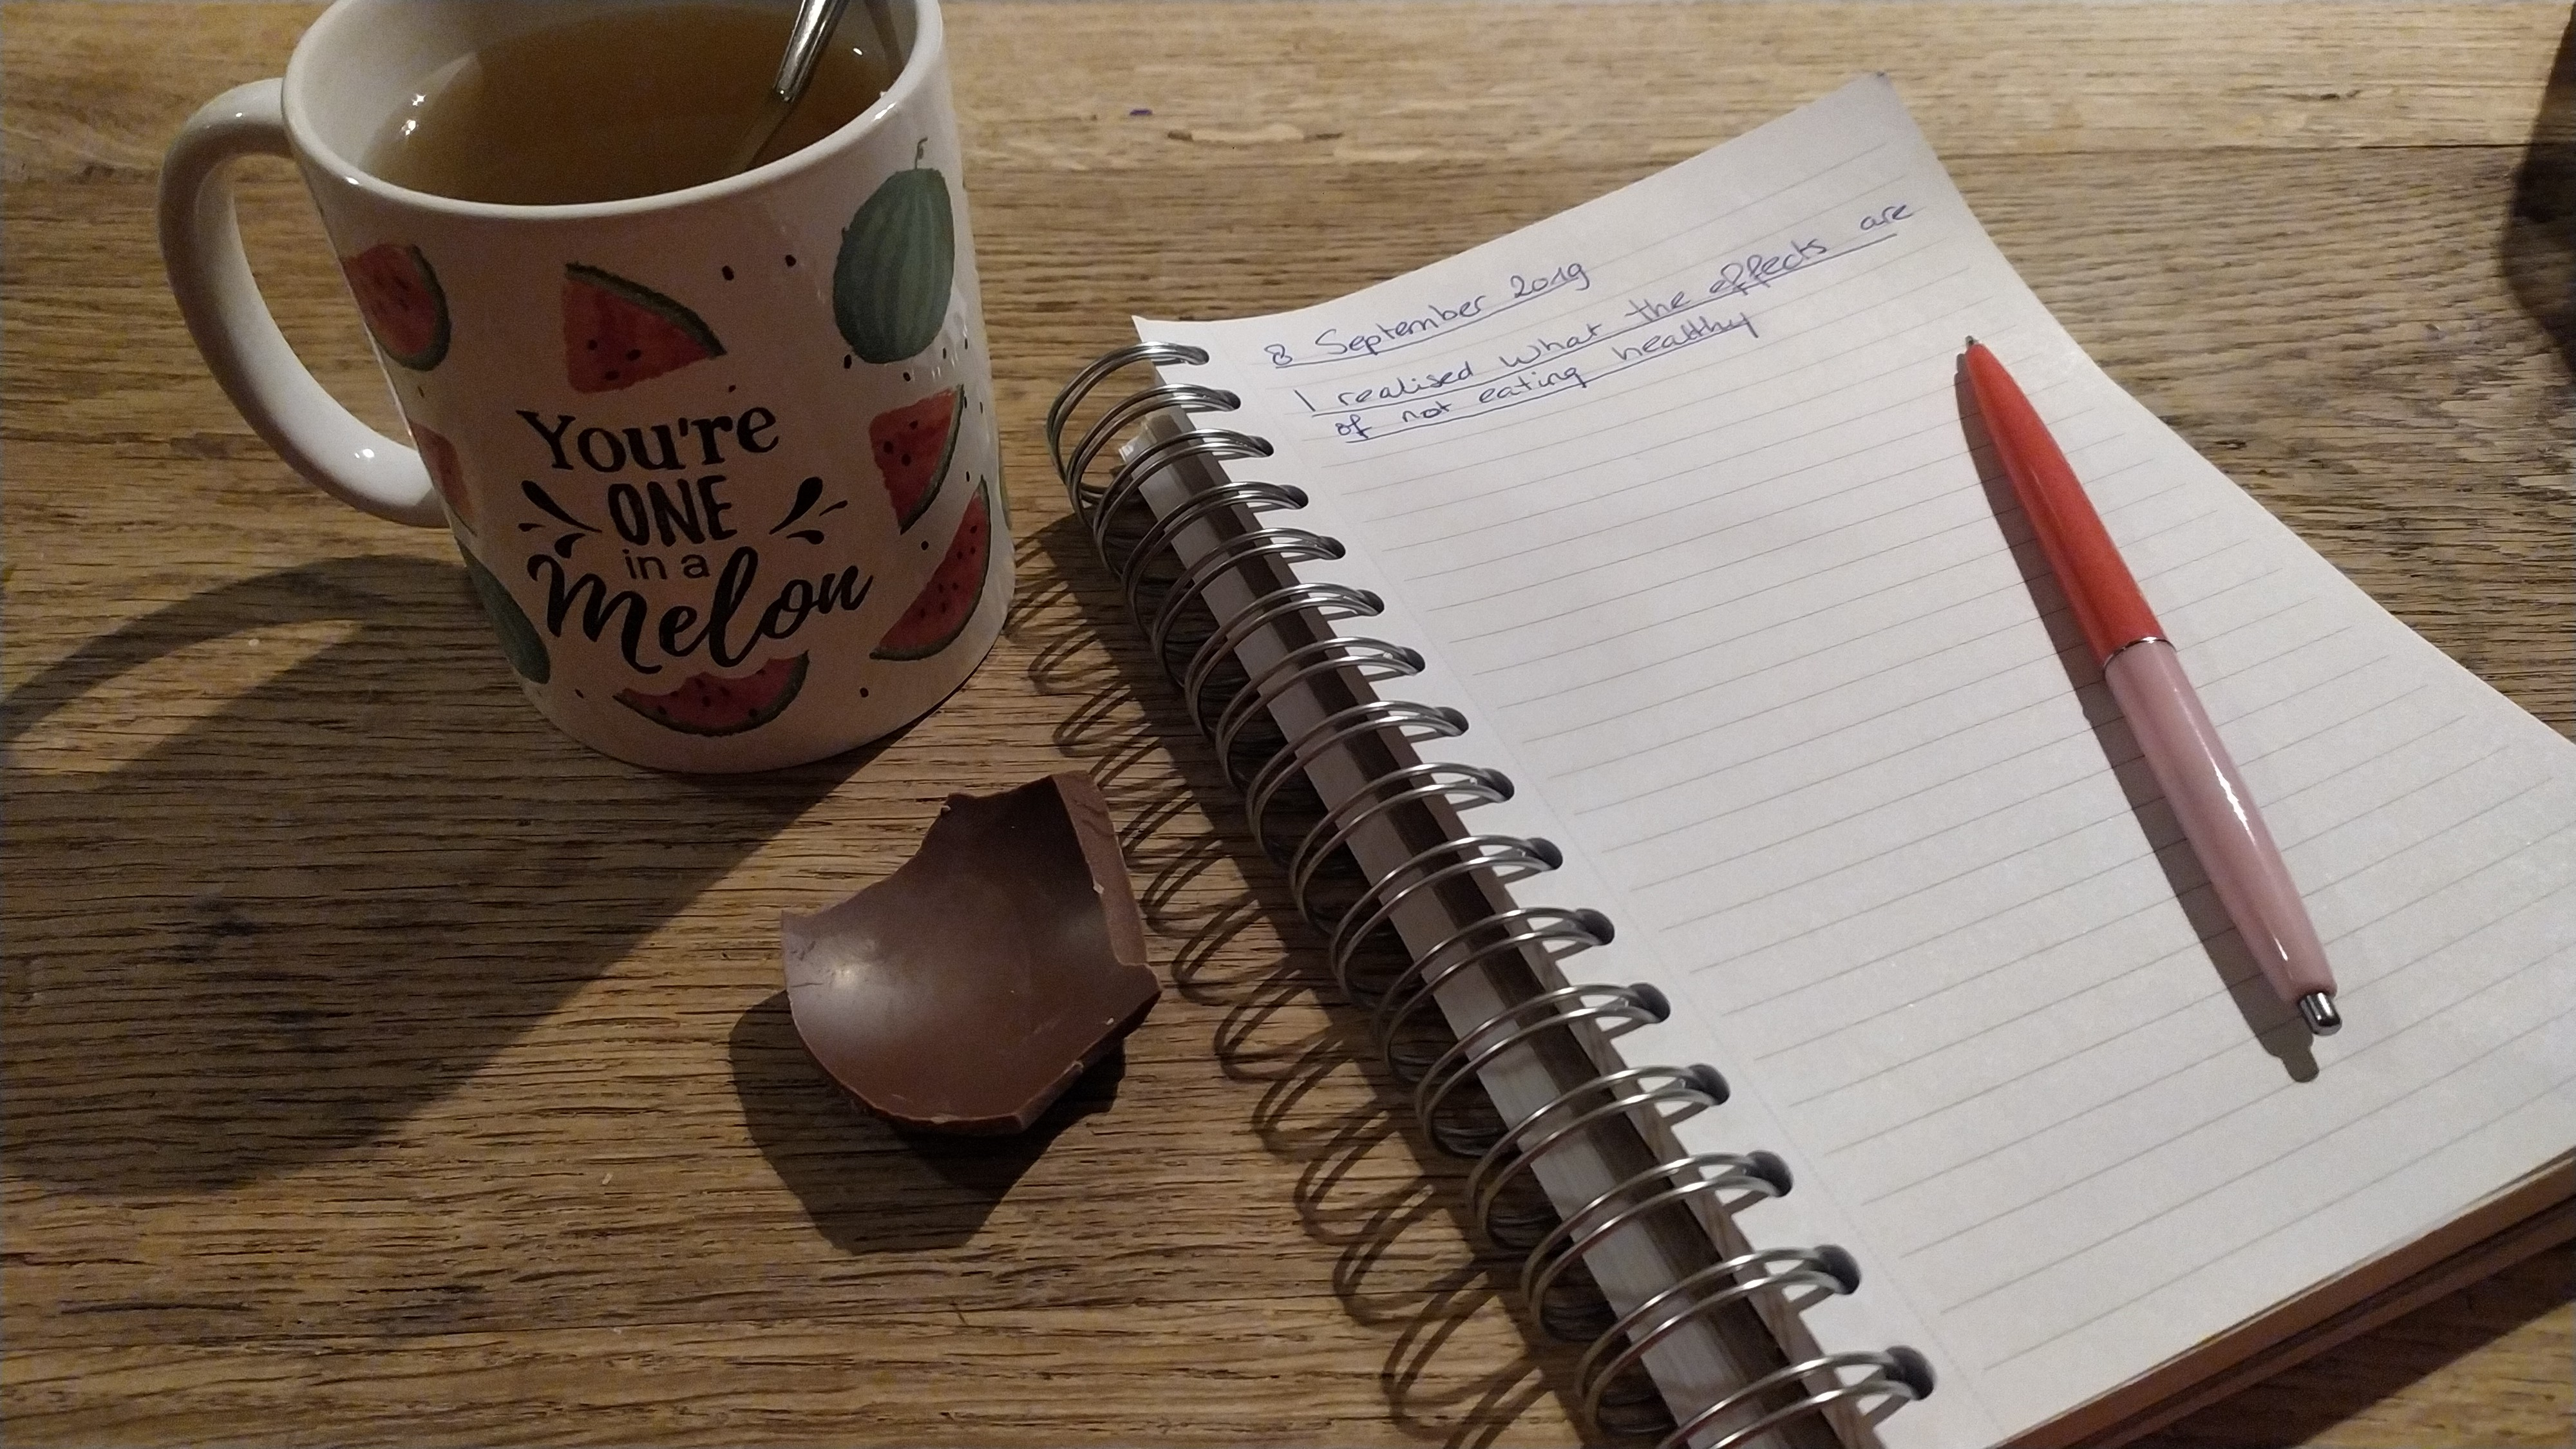 When I was drinking tea with honey and eating chocolate during writing. Not a healthy habit of mine.